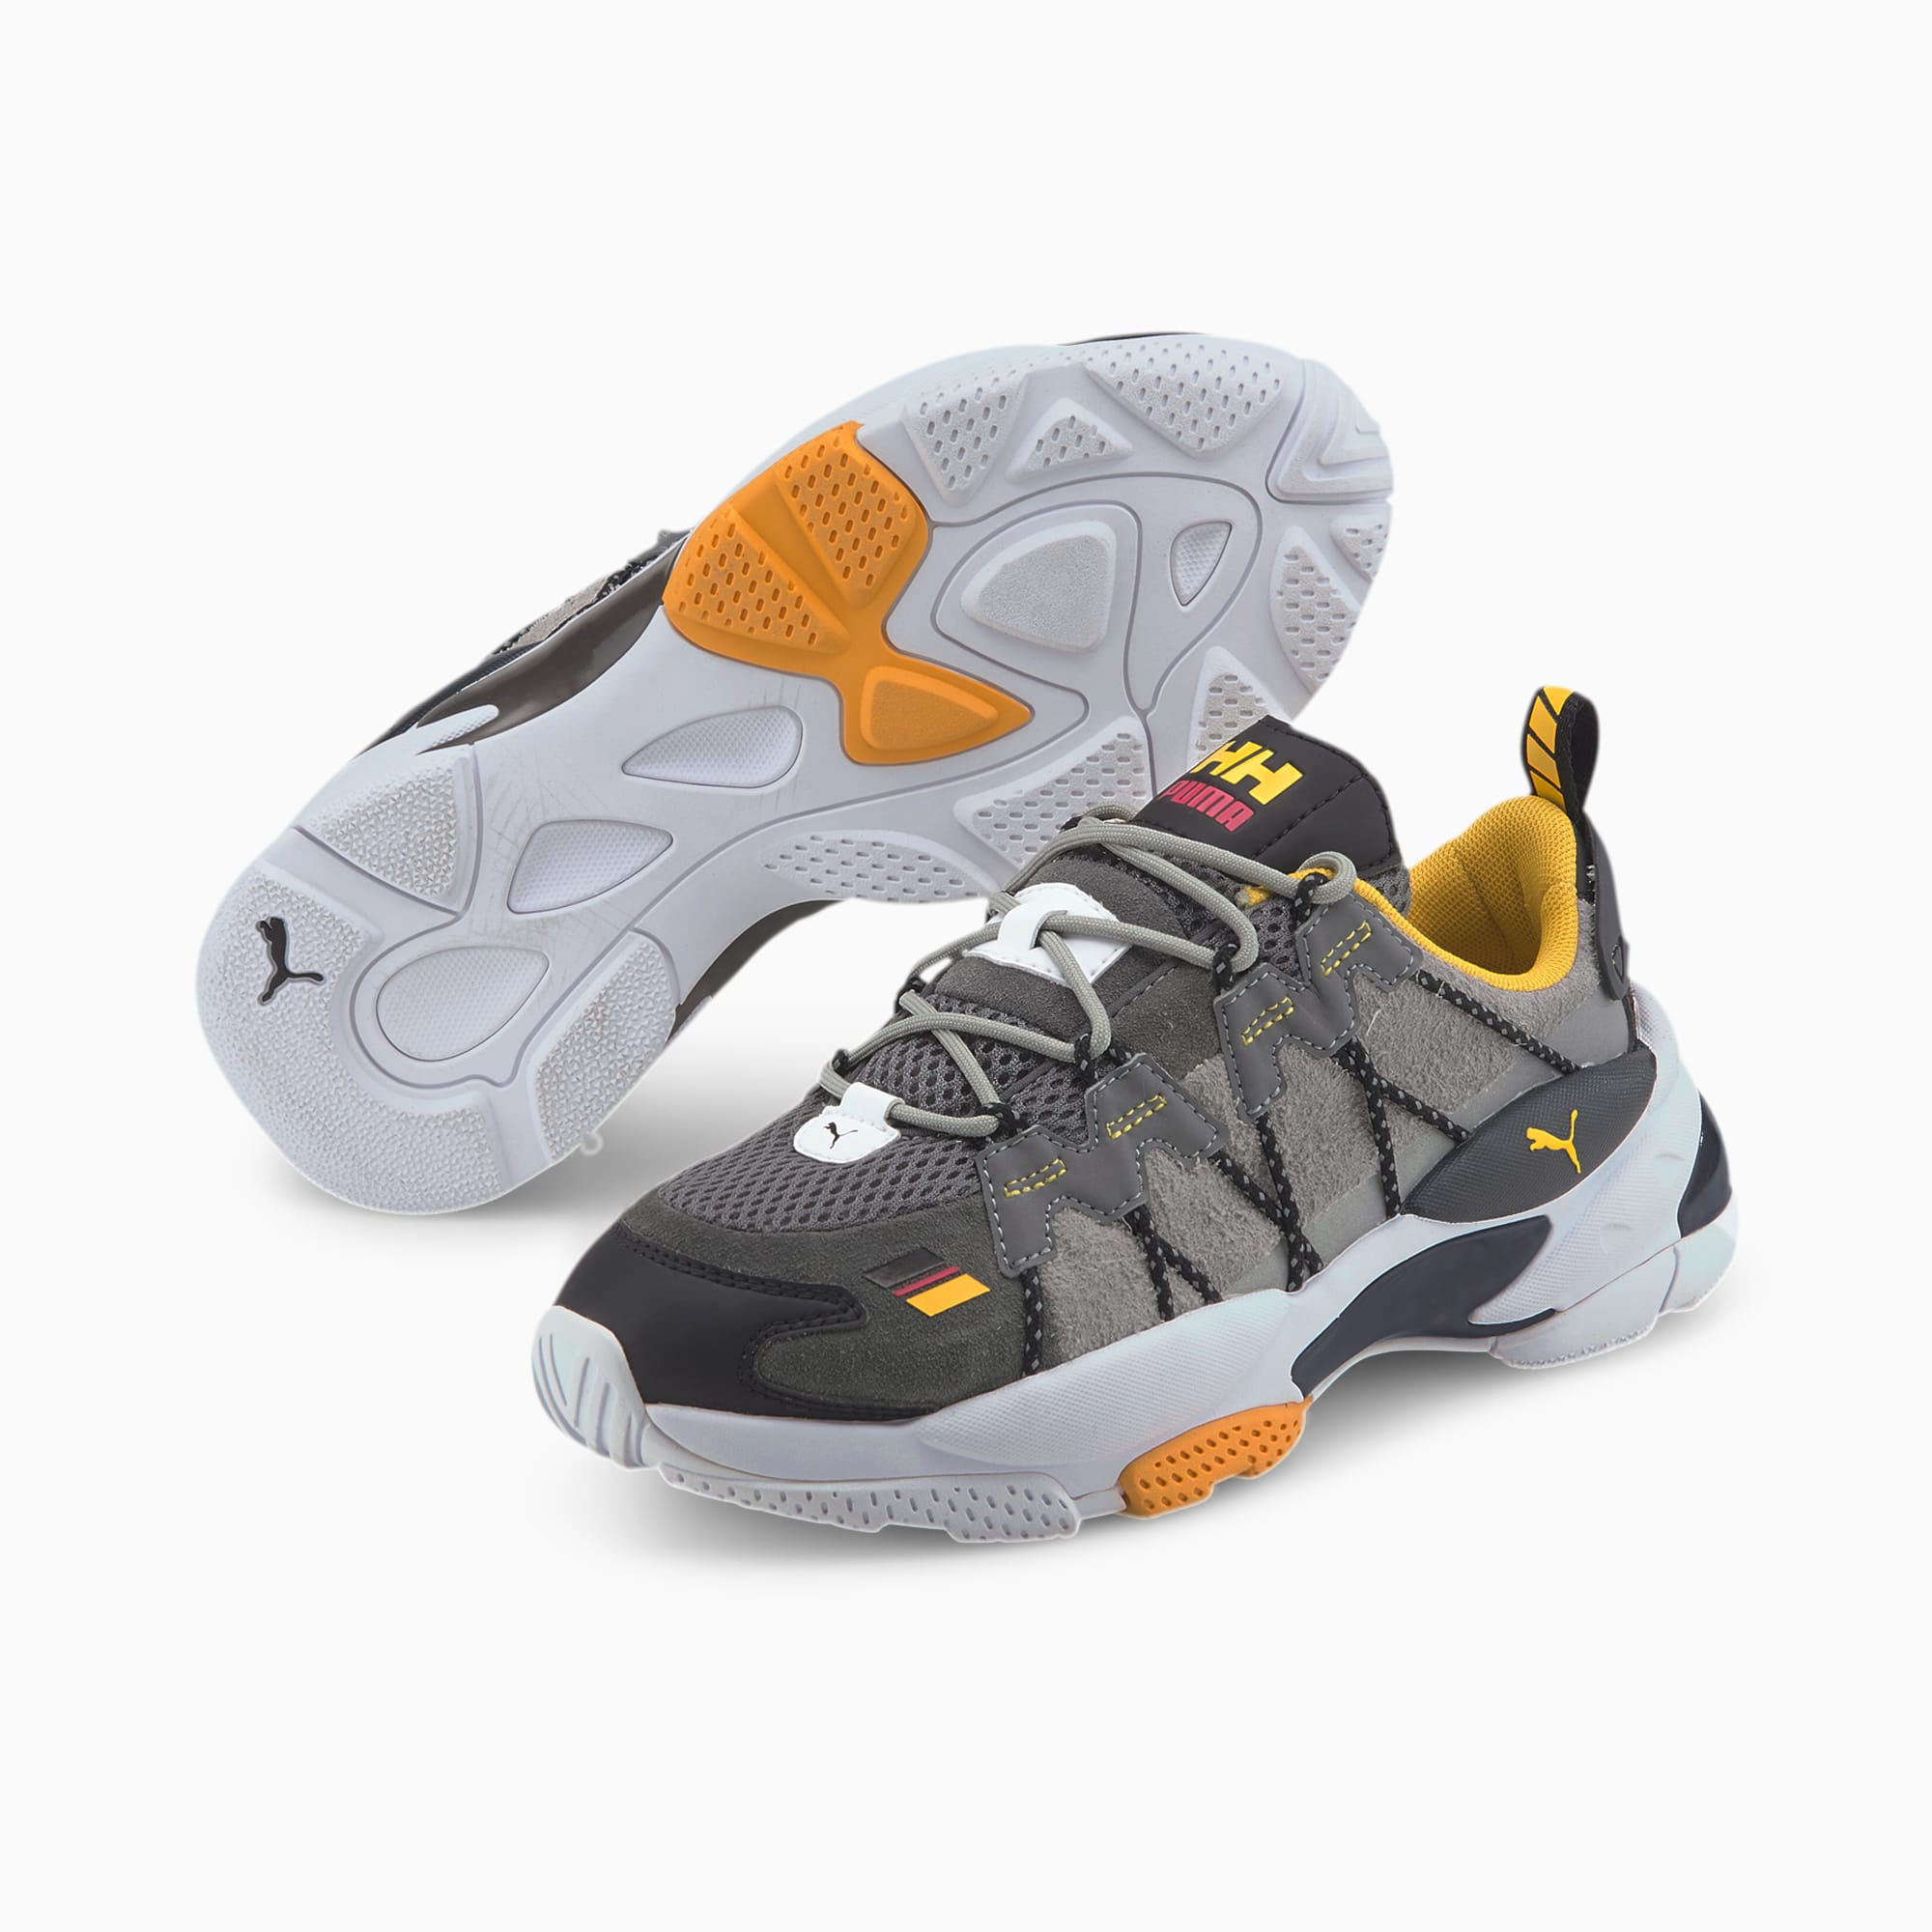 Puma LQD Cell Helly Hansen shoes QUIET SHADE Drizzle